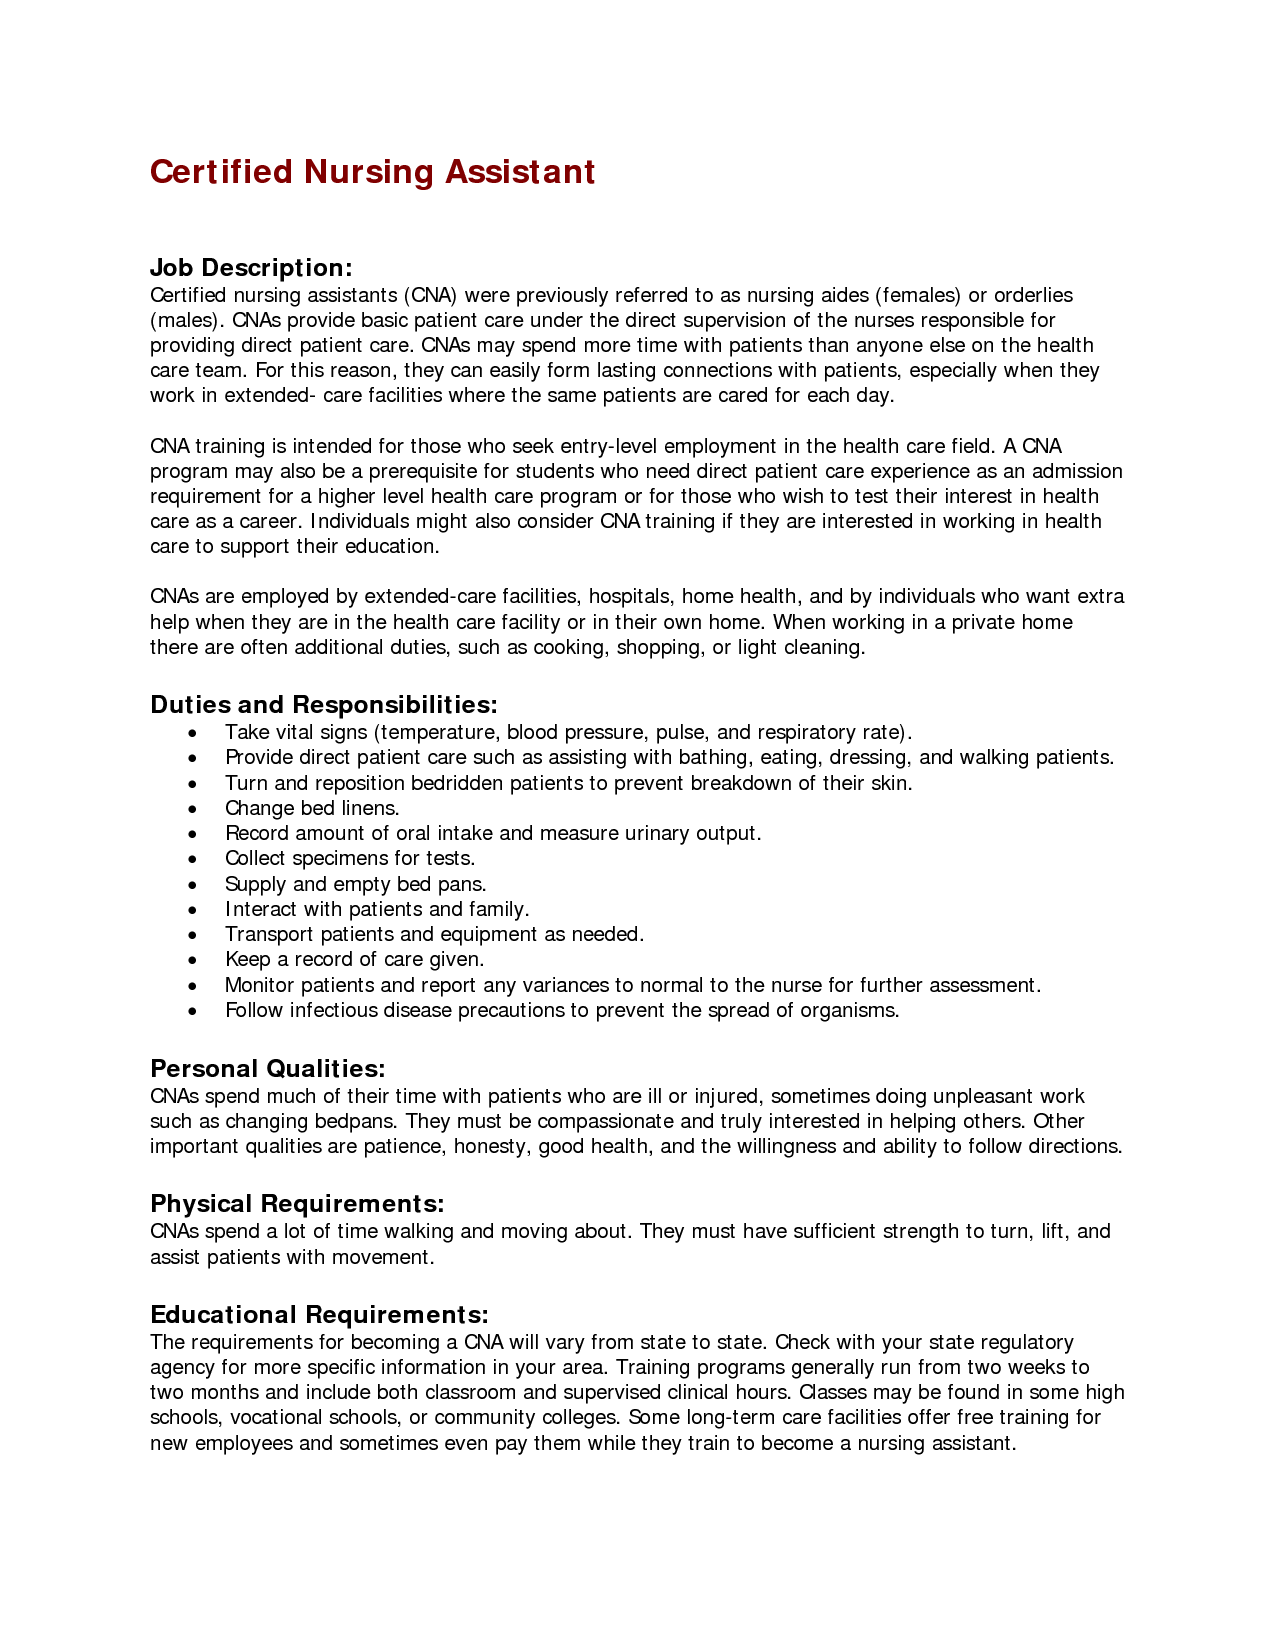 Certified Medical Assistant Resume Sample Sample Cna Certified Nursing Assistant Job Description